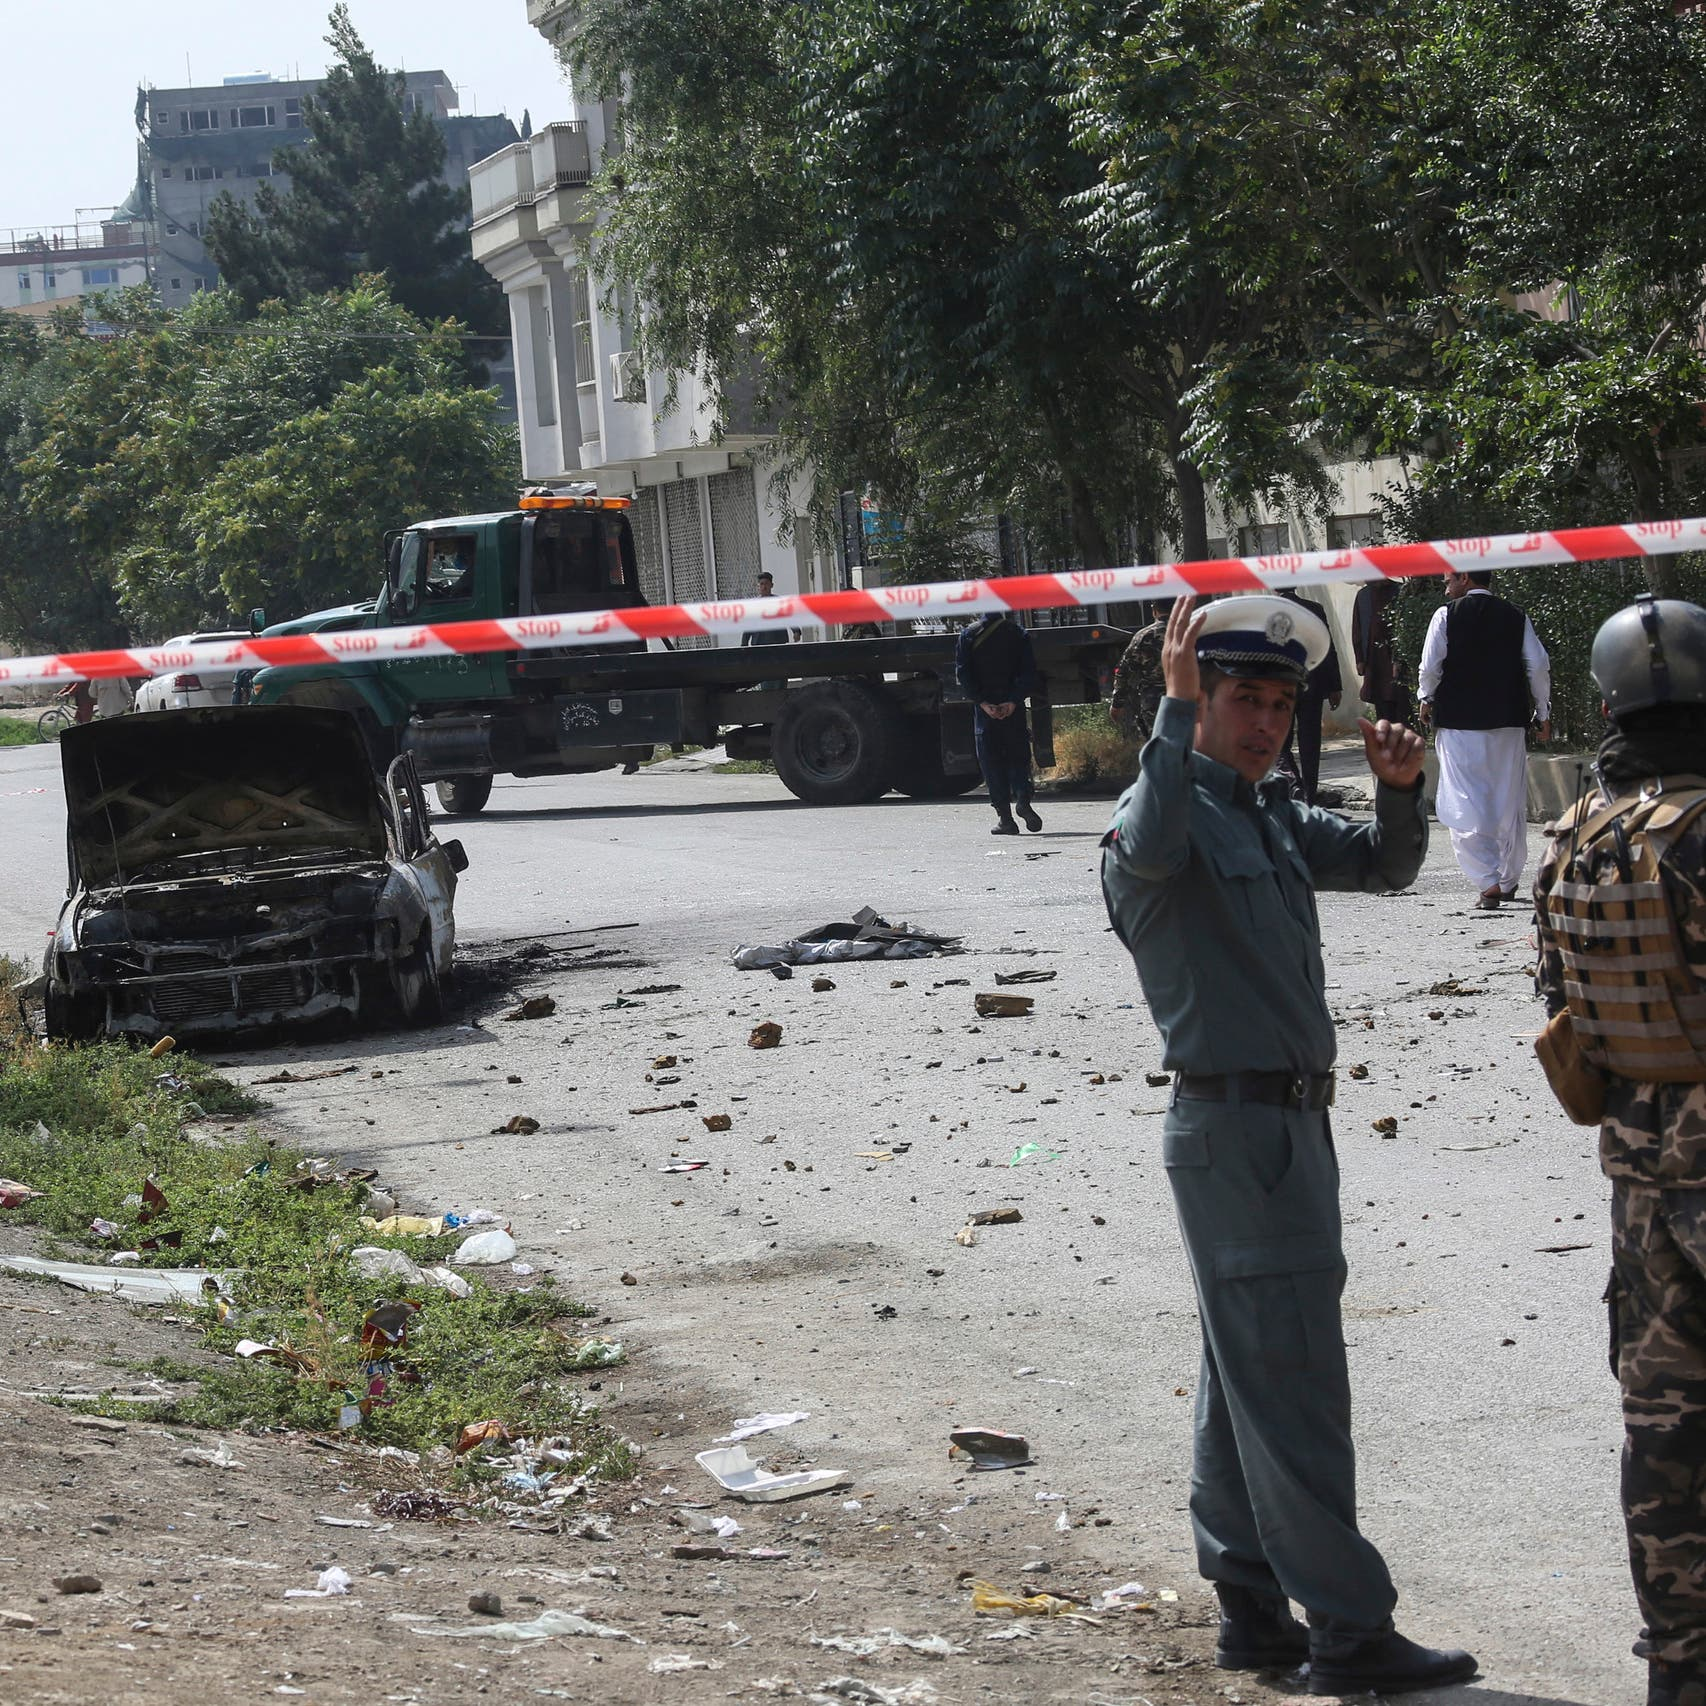 ISIS claims responsibility for rocket attack on Afghan presidential palace in Kabul